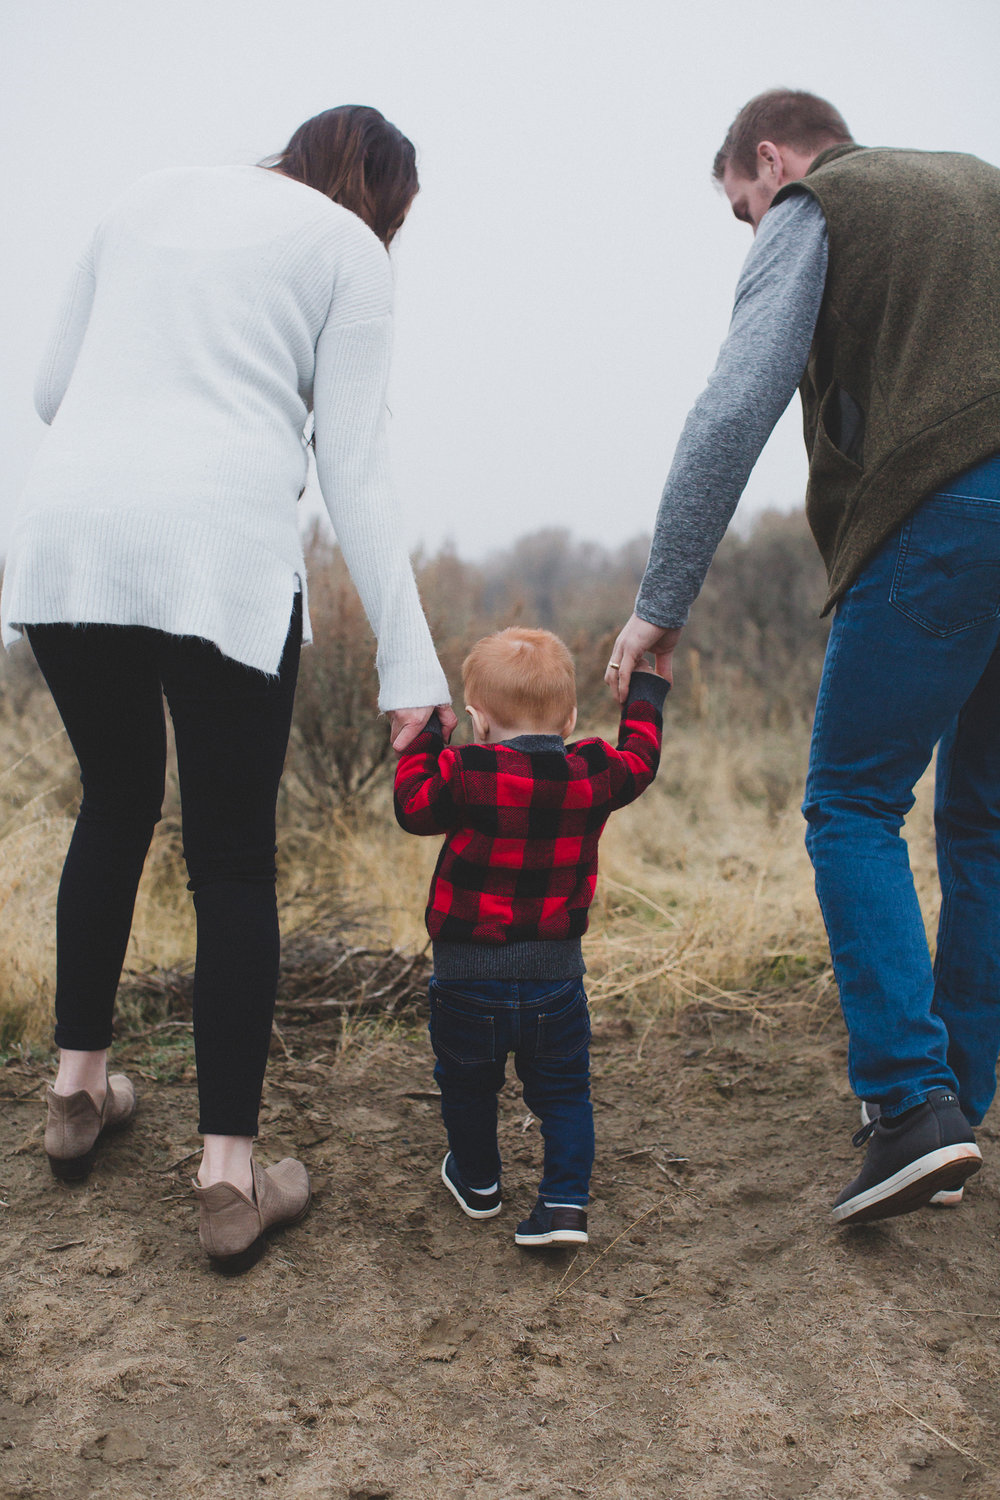 Jordan Edens Photographer_Tri Cities photographer_Family photographer_child photographer_lifestyle photographer_Kennewick family photographer_richland family photographer_families_babies_memories_75